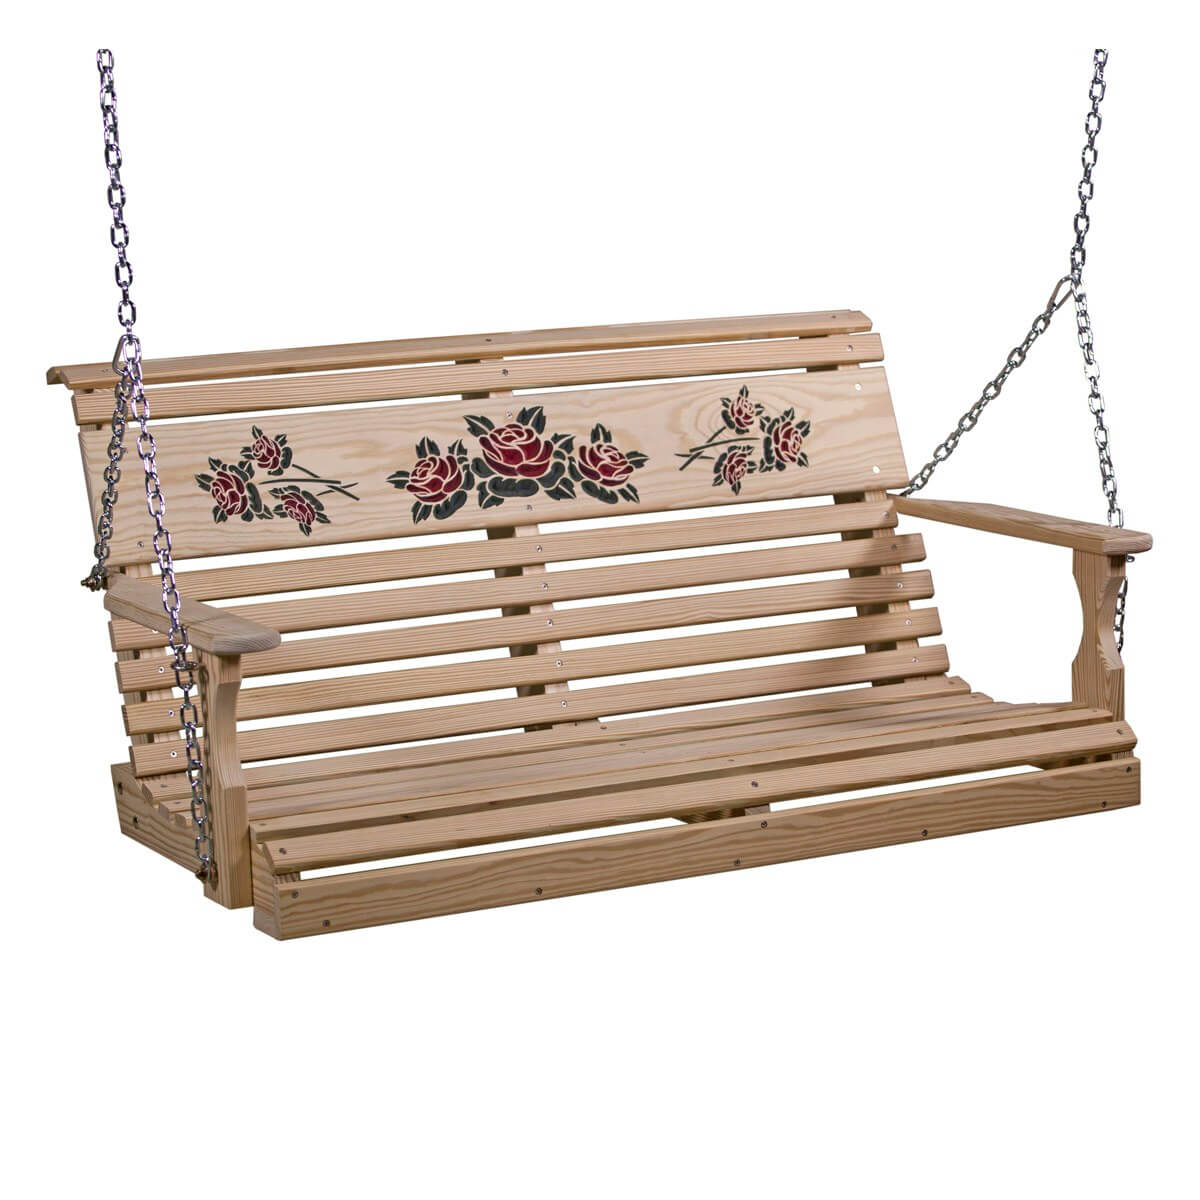 Luxcraft Wood Rollback Rose Swing 4' To 5' Regarding Plain Porch Swings (View 18 of 25)